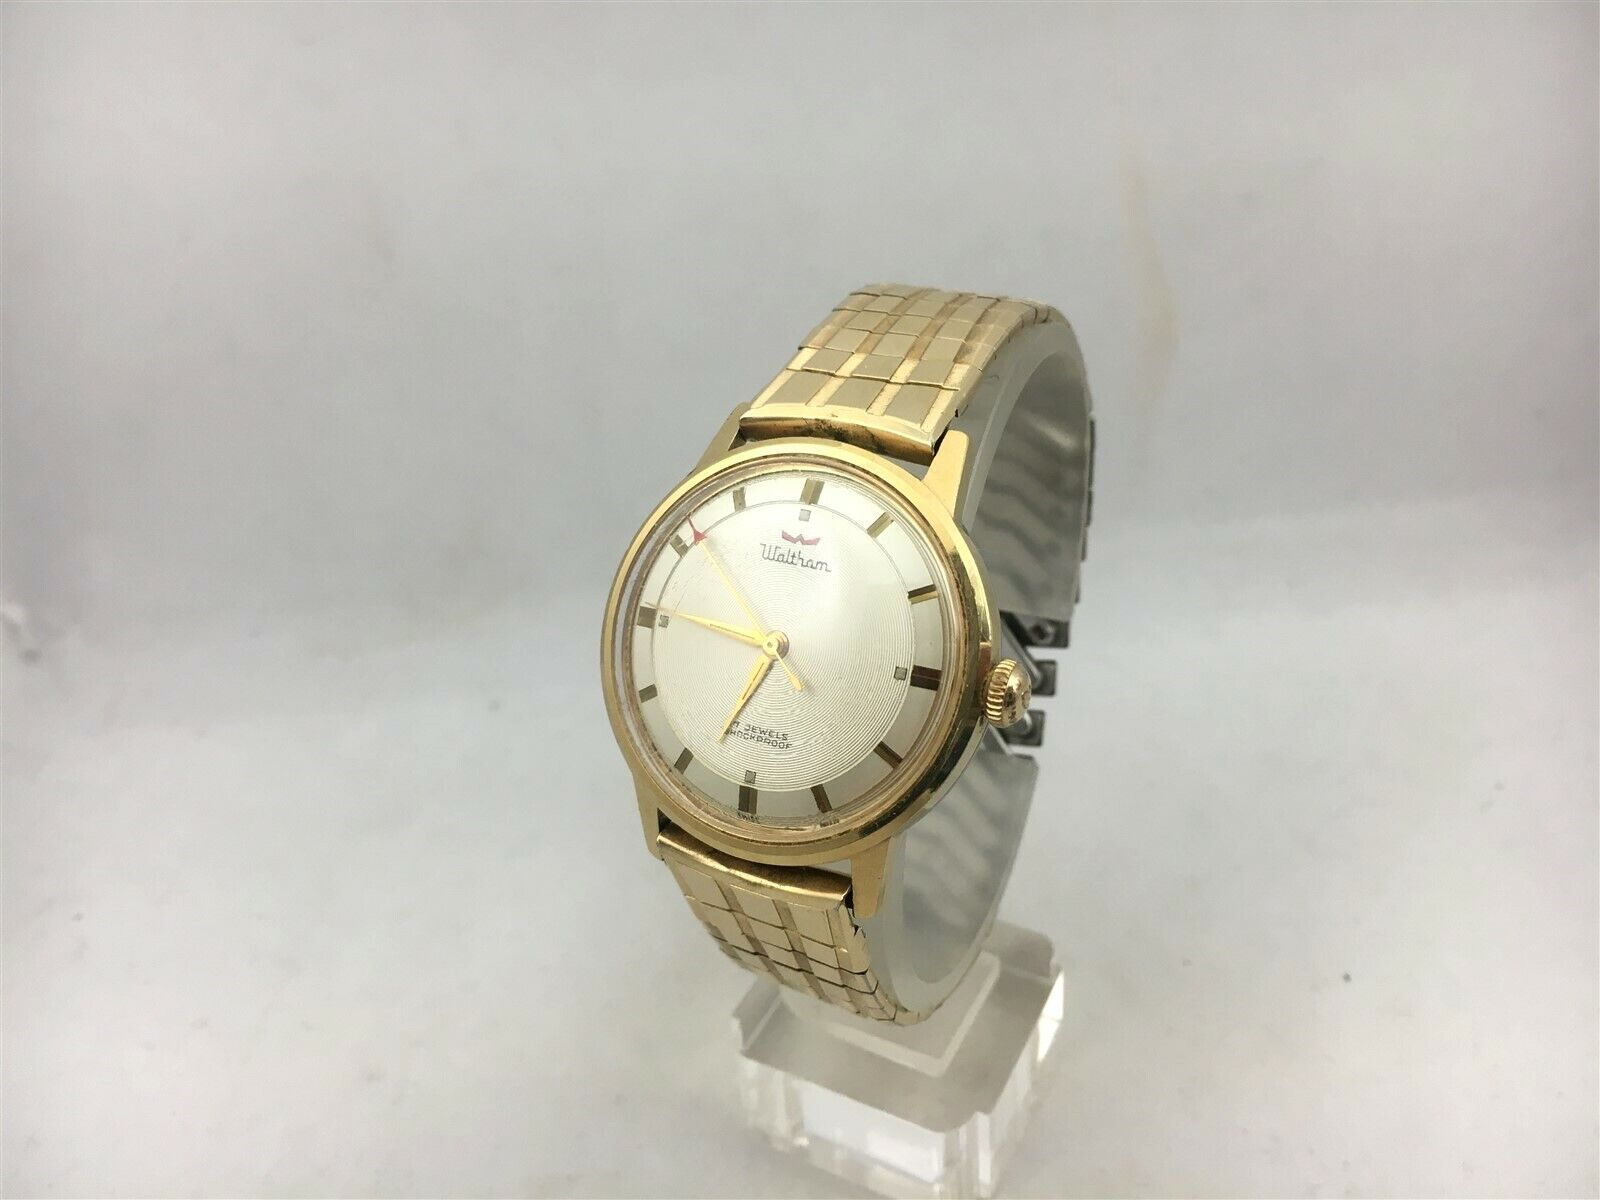 Waltham 17 Jewels Gold Tone Watch Antimagnetic Shock Protected Red Arrow - $49.99